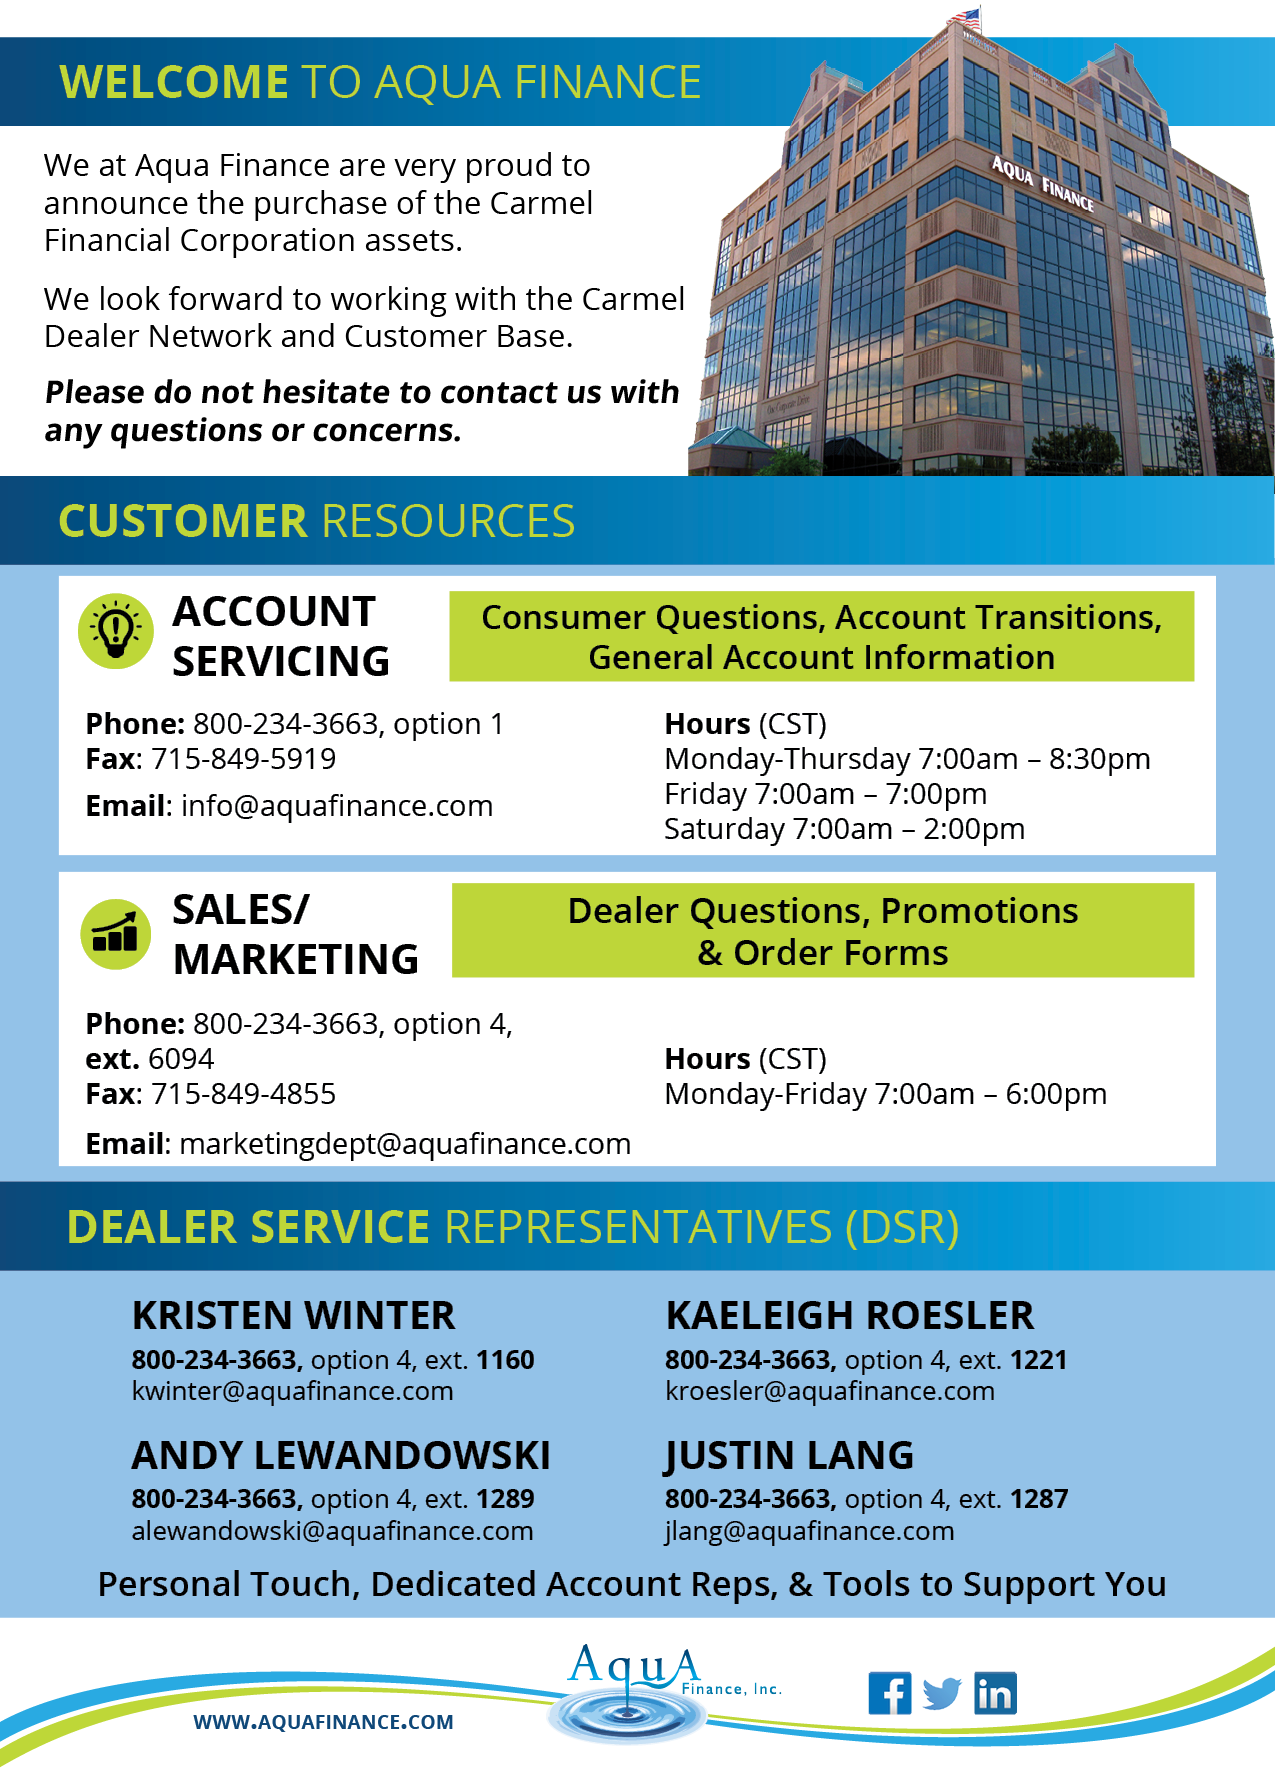 Aqua Finance welcomes Carmel Finance customers and dealers. We are proud and honored that the Carmel/Sheehan family would reach out us to service your accounts and needs.